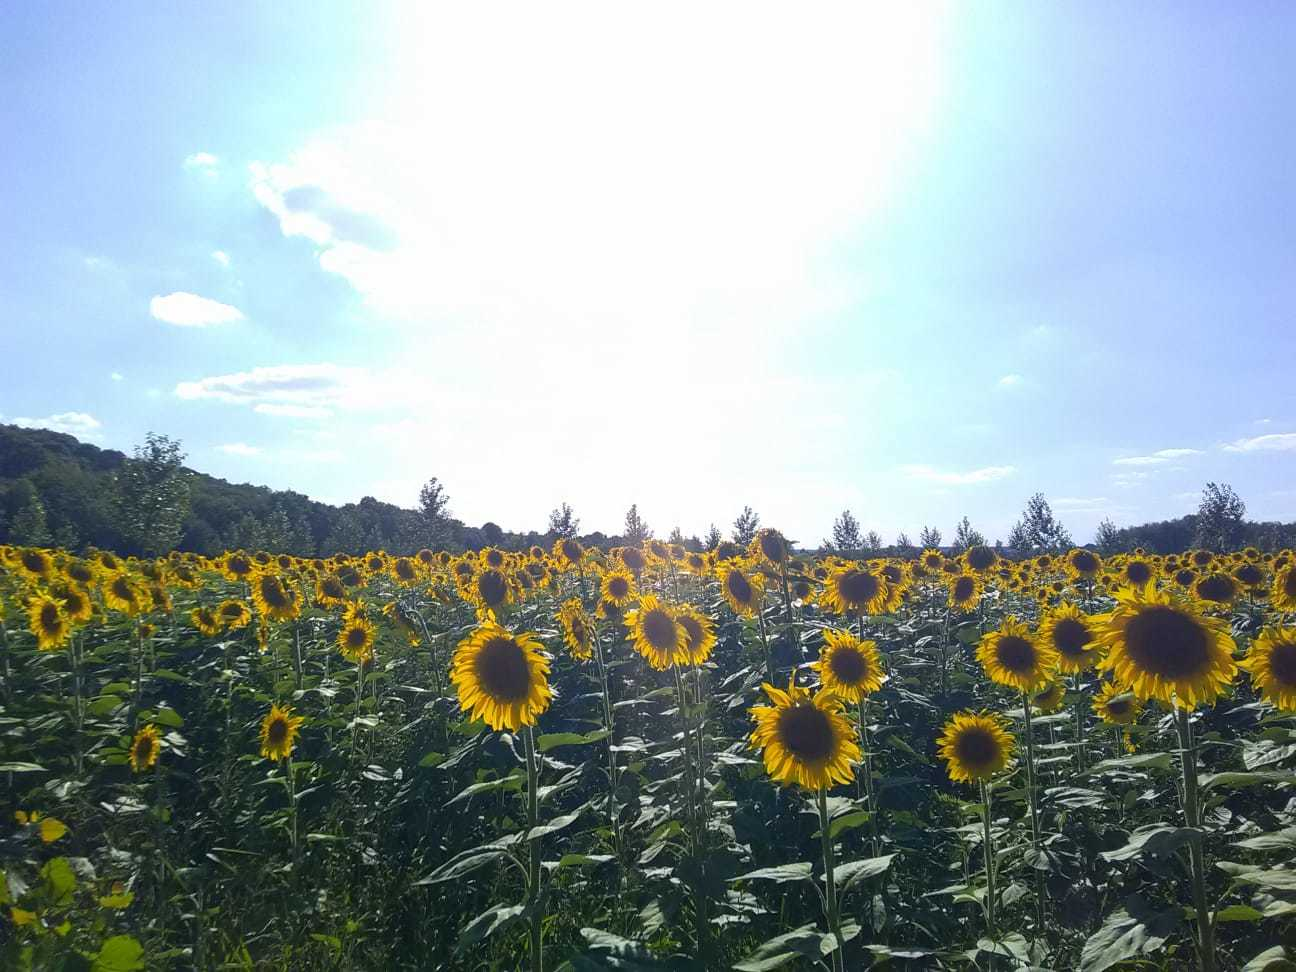 A Sea of Sunflowers